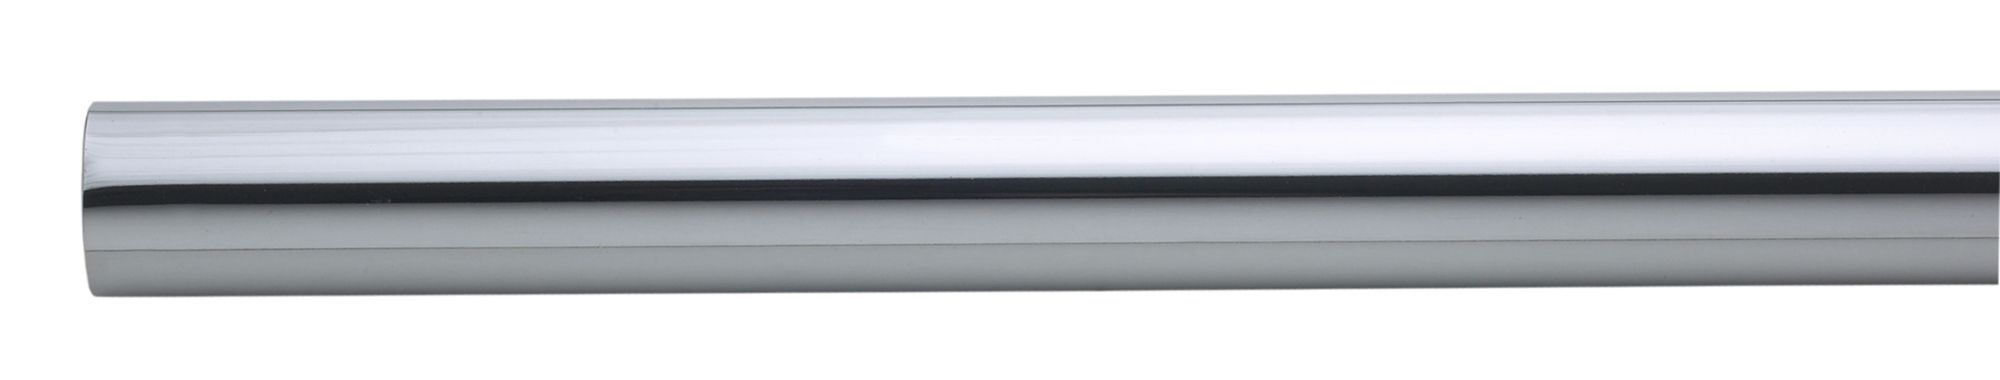 Colorail Chrome Effect Steel Round Tube (l)0.91m